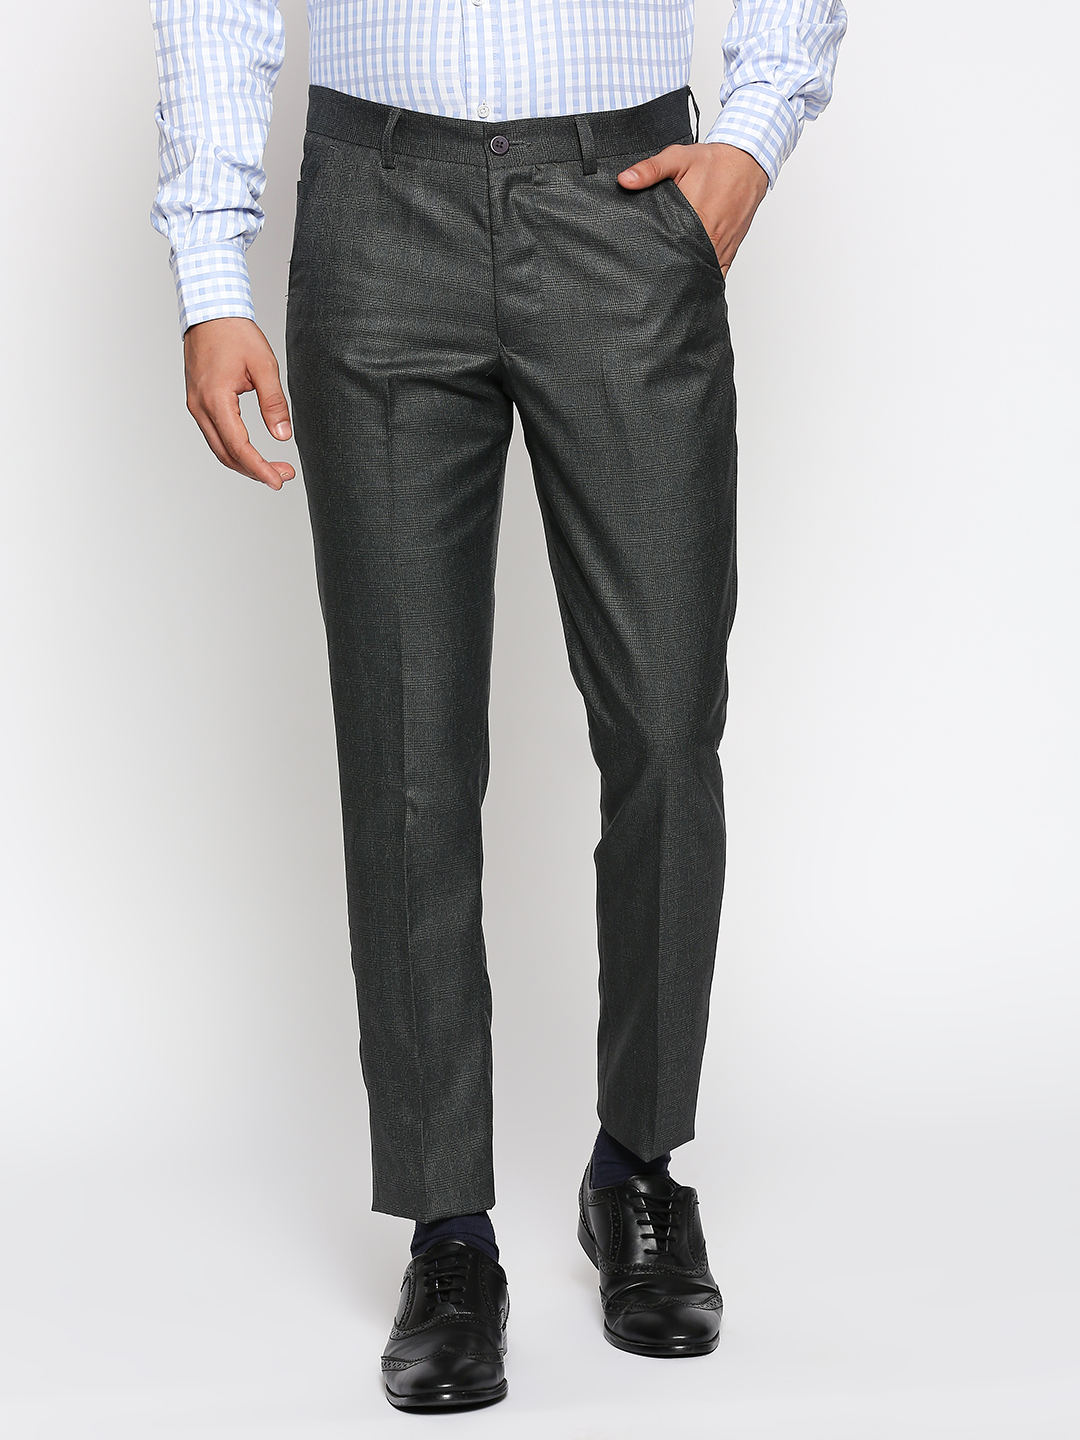 SOLEMIO   Solemio Poly Viscose Ankle Length Checks Formal Trouser For Mens